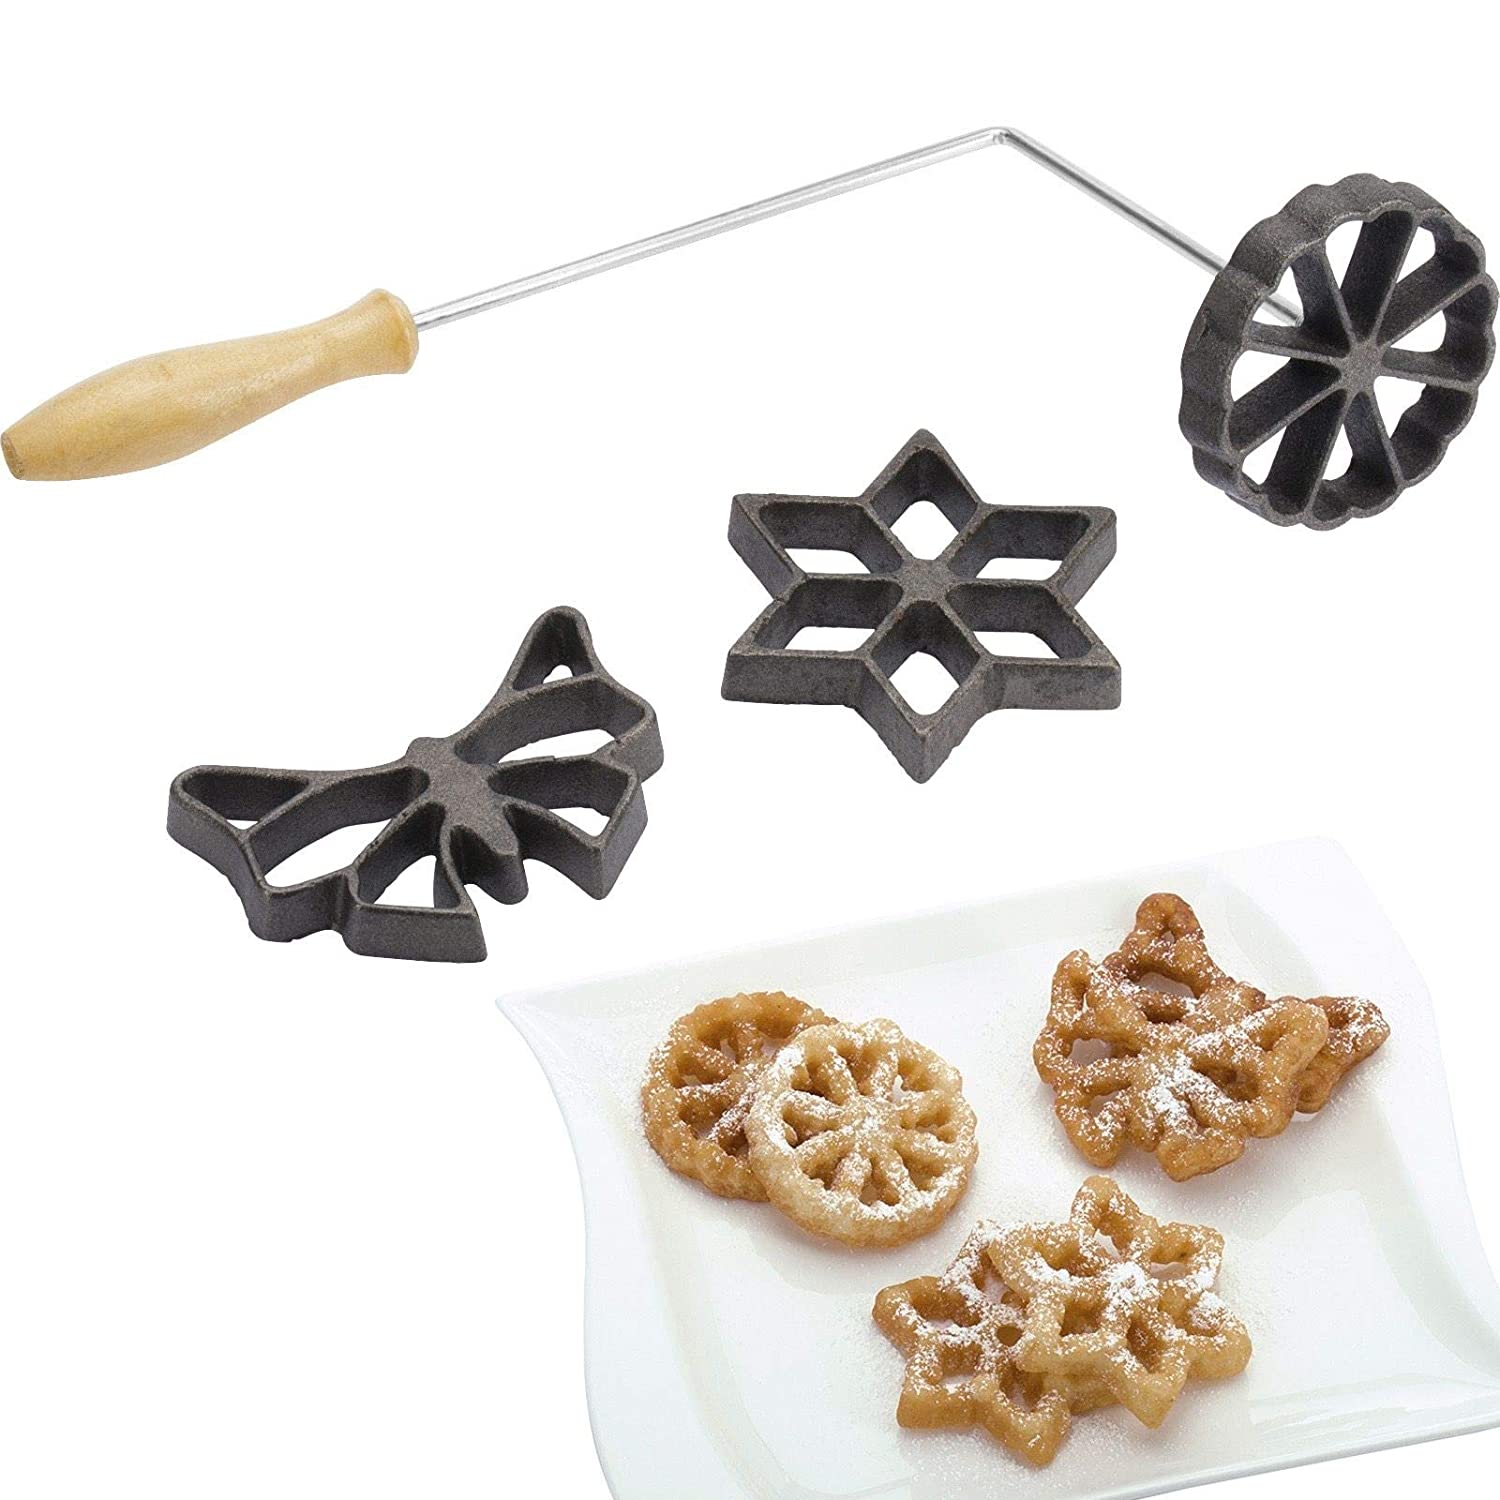 Westmark 32242260 Waffle Molds With 3 Different Designs Forms Vary Between 2 75 And 3 5 Stainless Steel